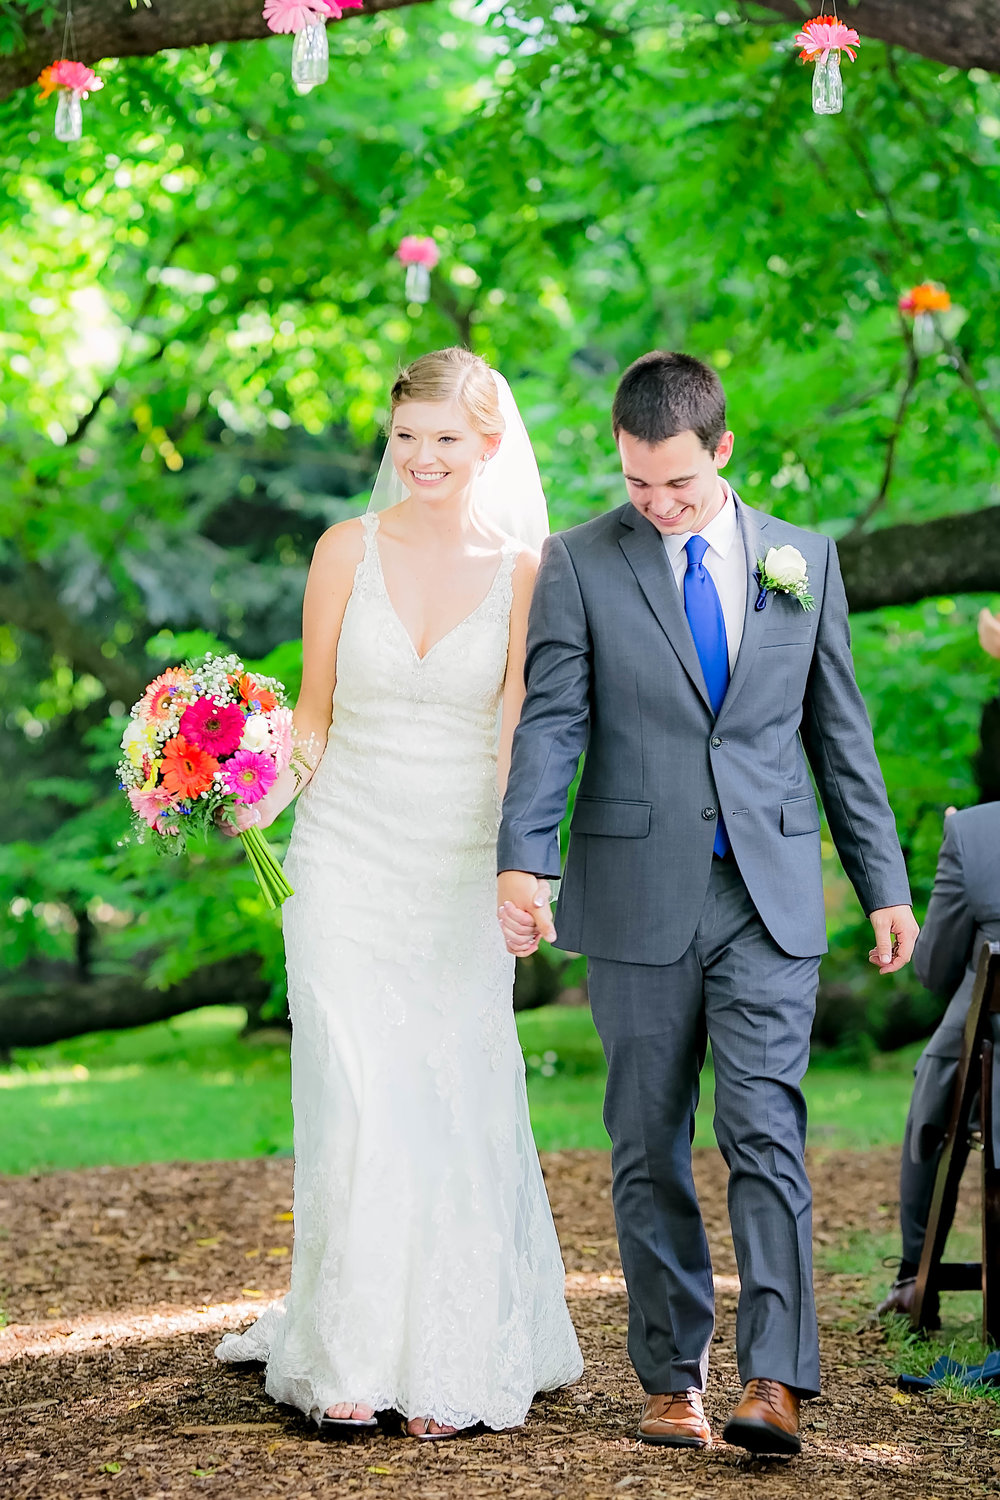 Hot Springs, NC wedding, East Tennessee Wedding photography, wedding ceremony, bride and groom recessional